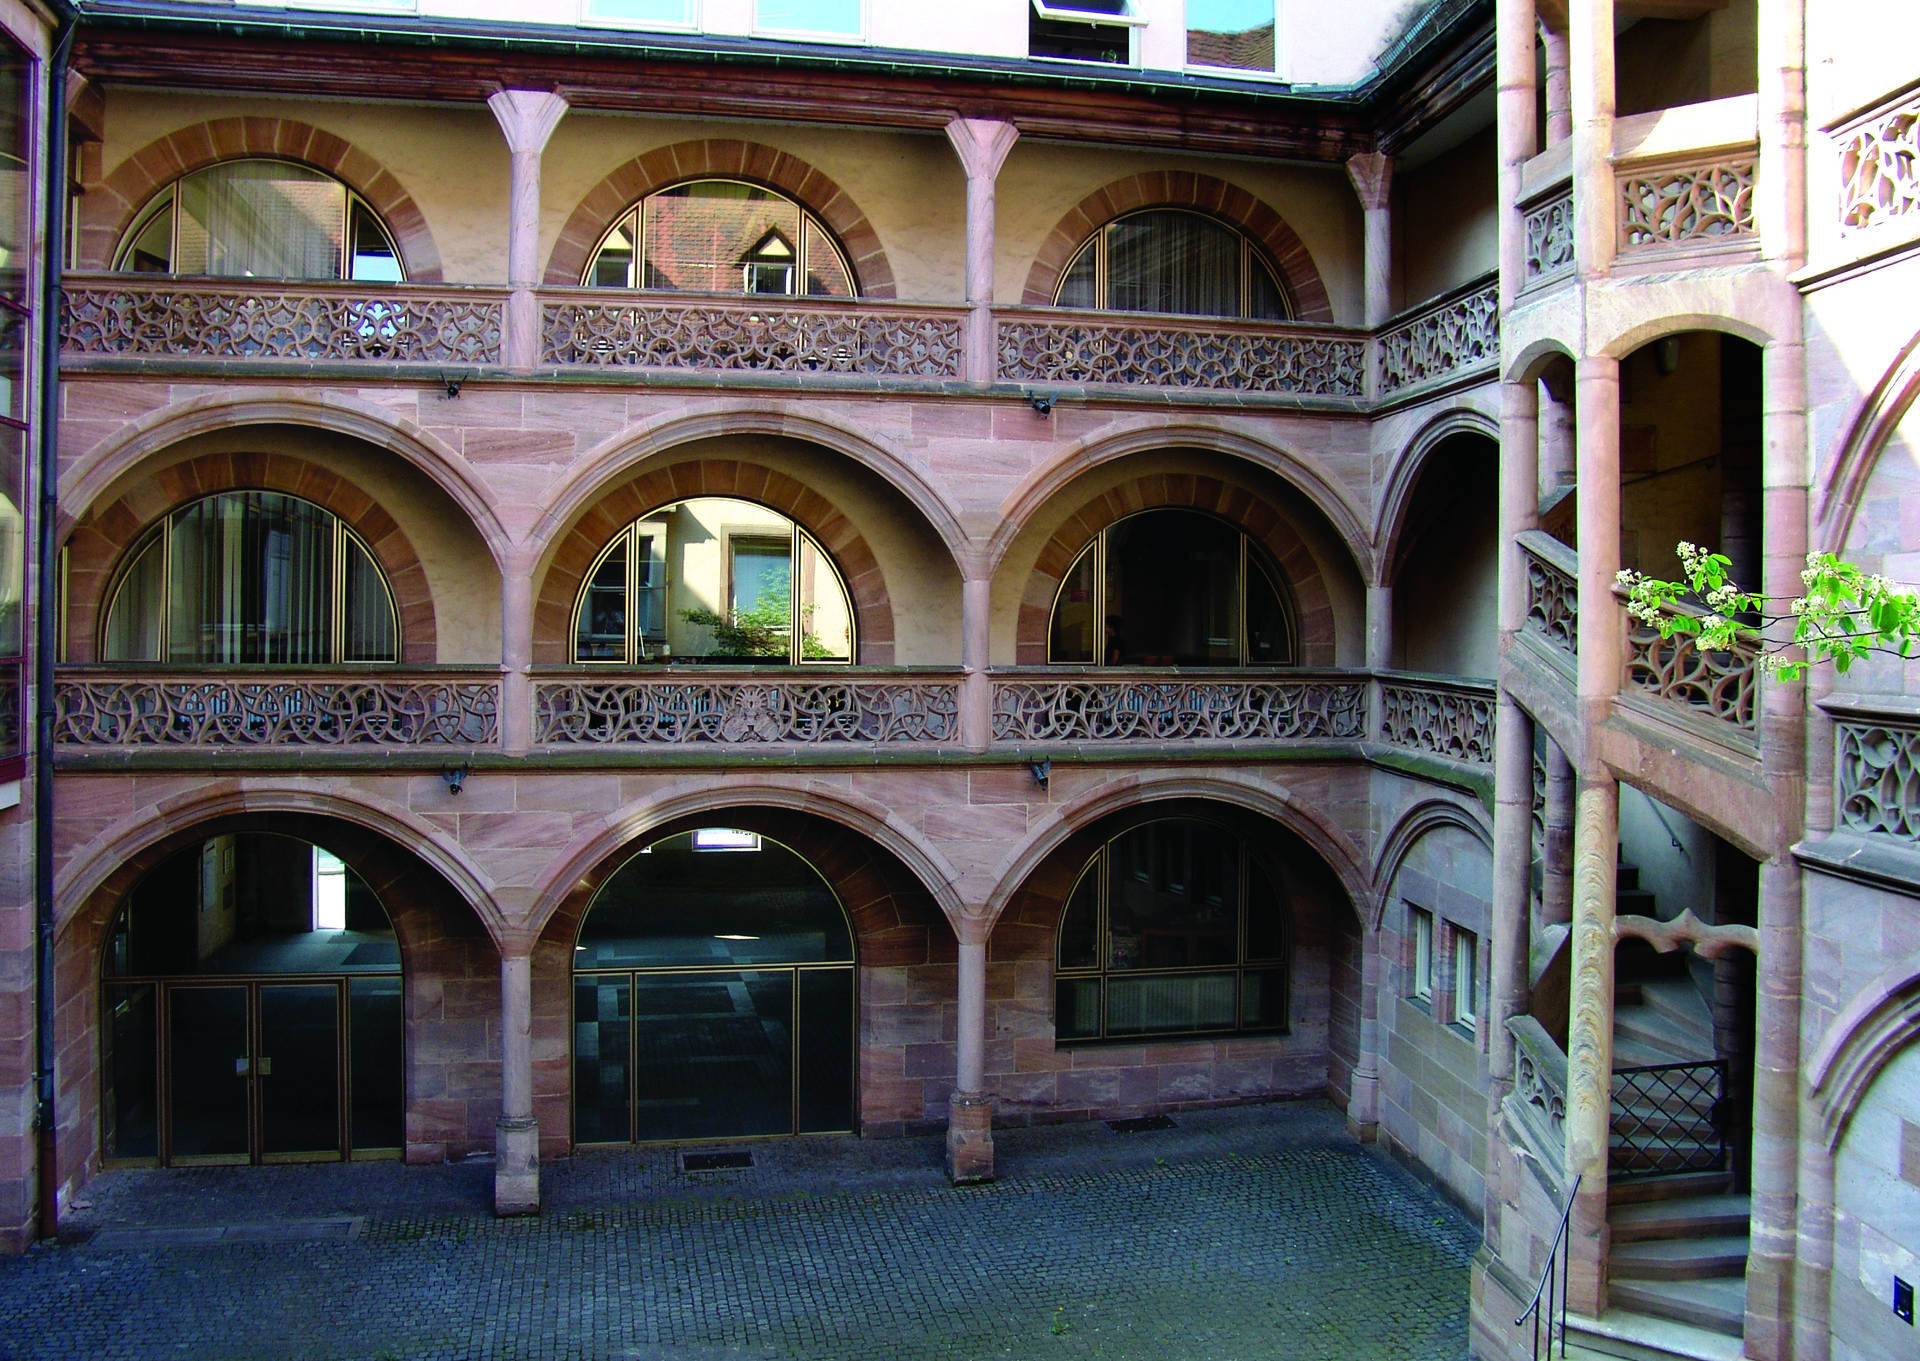 Welser Hof (Welser Court) Inner courtyard with arcades